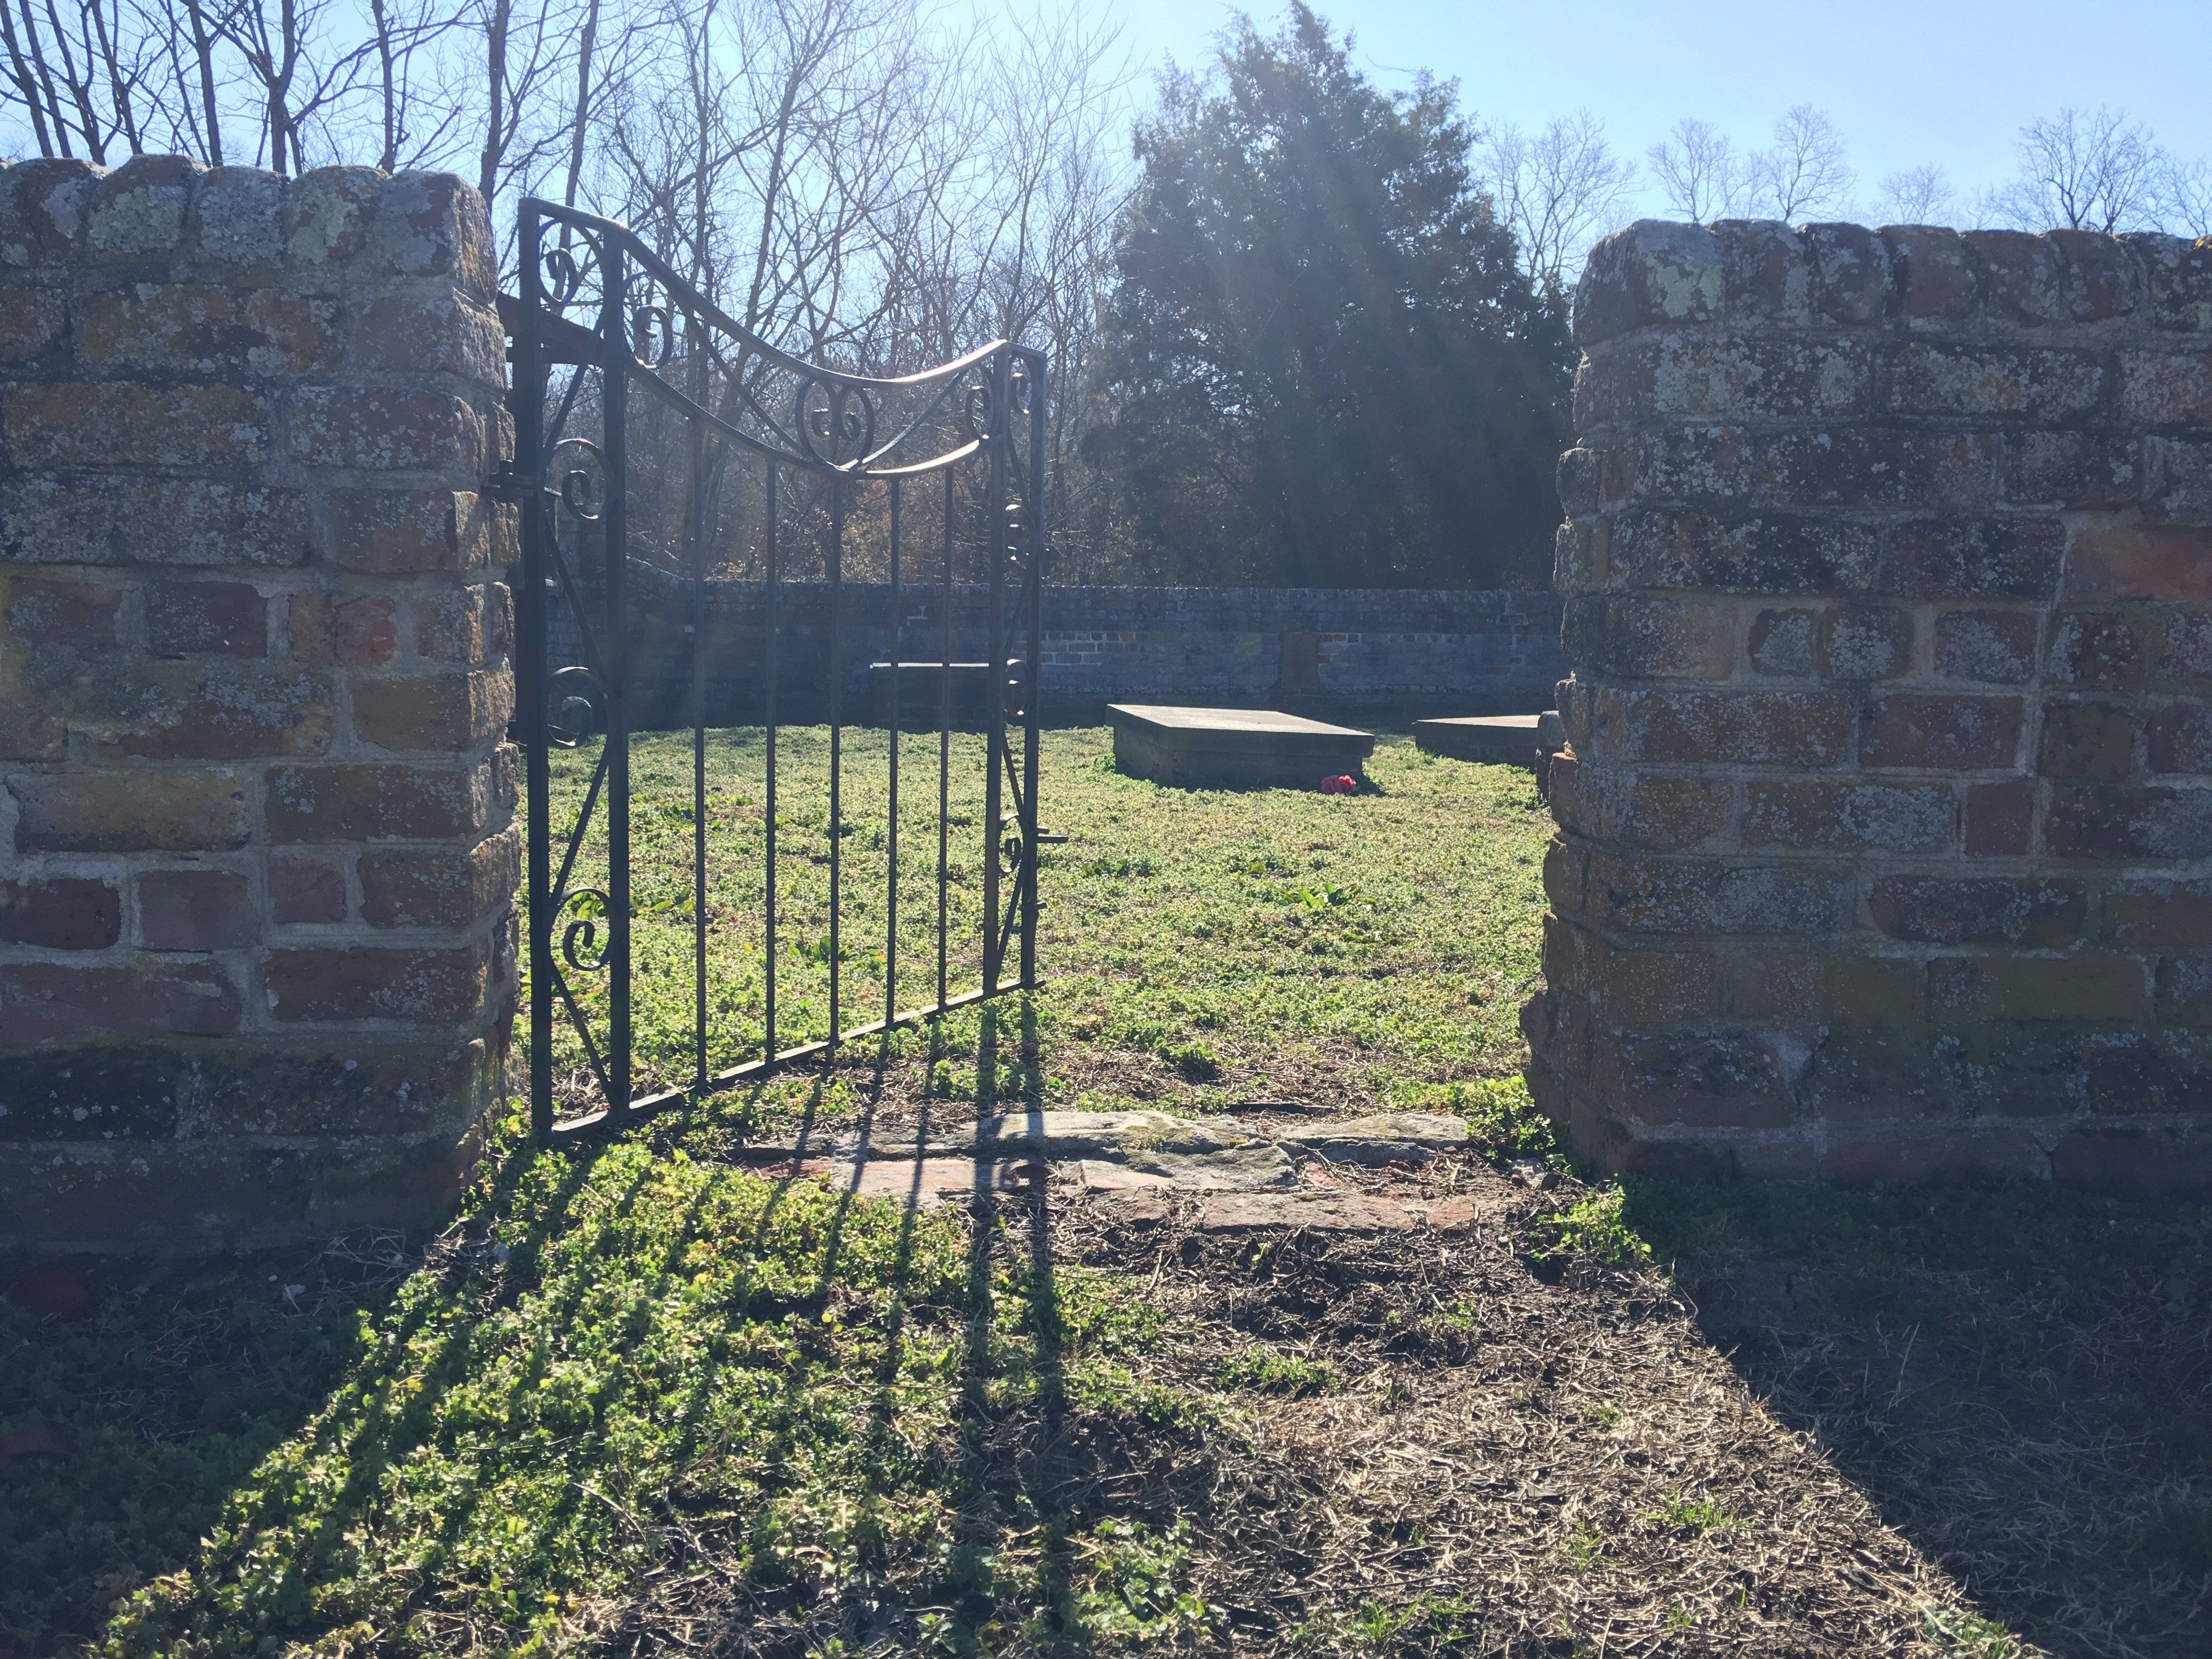 The WarnerLewis family graveyard is open for visitors. It